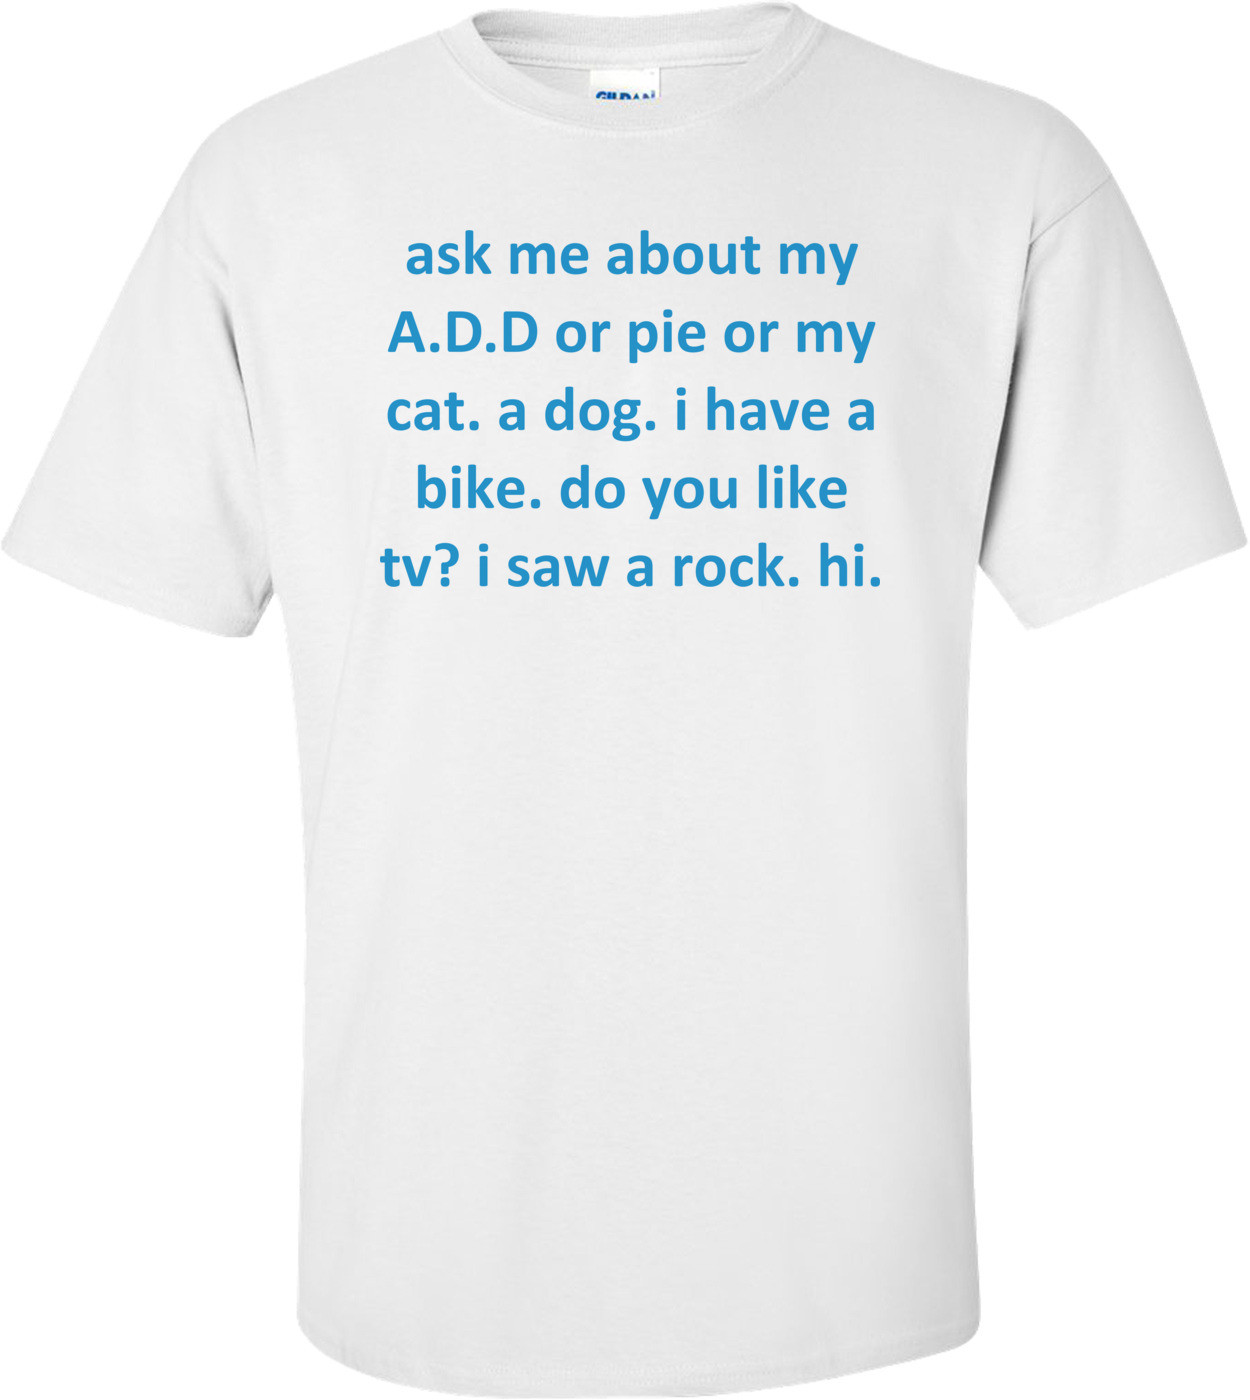 ask me about my A.D.D or pie or my cat. a dog. i have a bike. do you like tv? i saw a rock. hi. Shirt